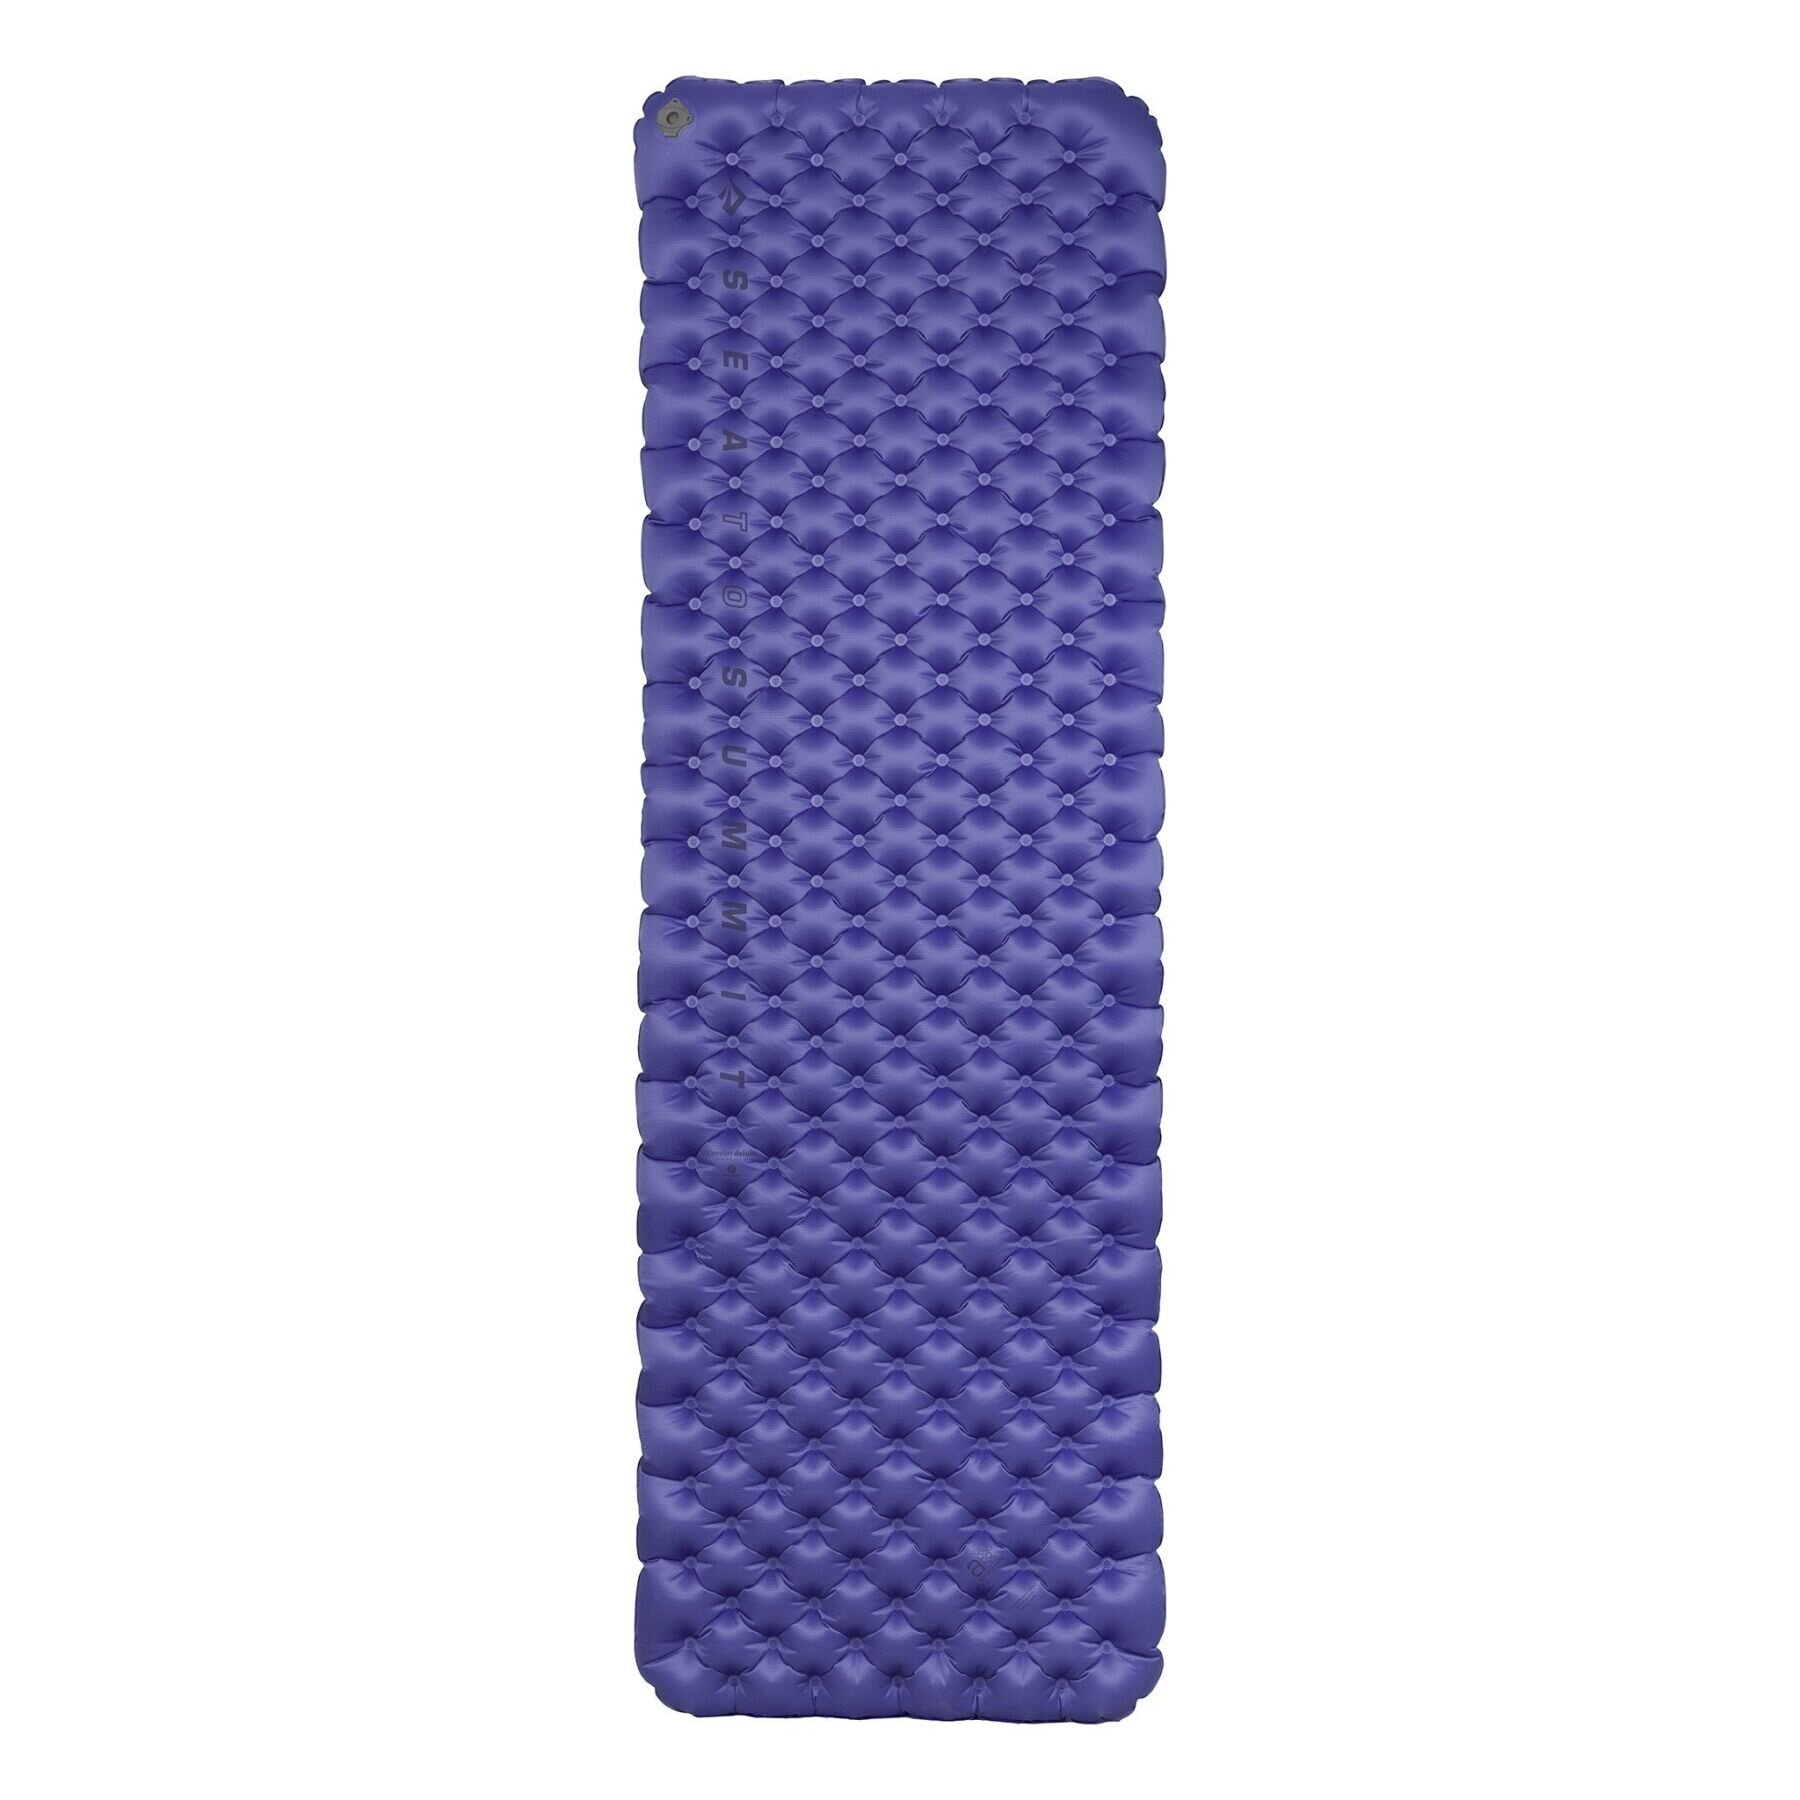 Надувной коврик Sea To Summit - Air Sprung Comfort Deluxe Insulated Mat Blue, 186 см х 64 см х 8 см (STS AMCDINSRW)